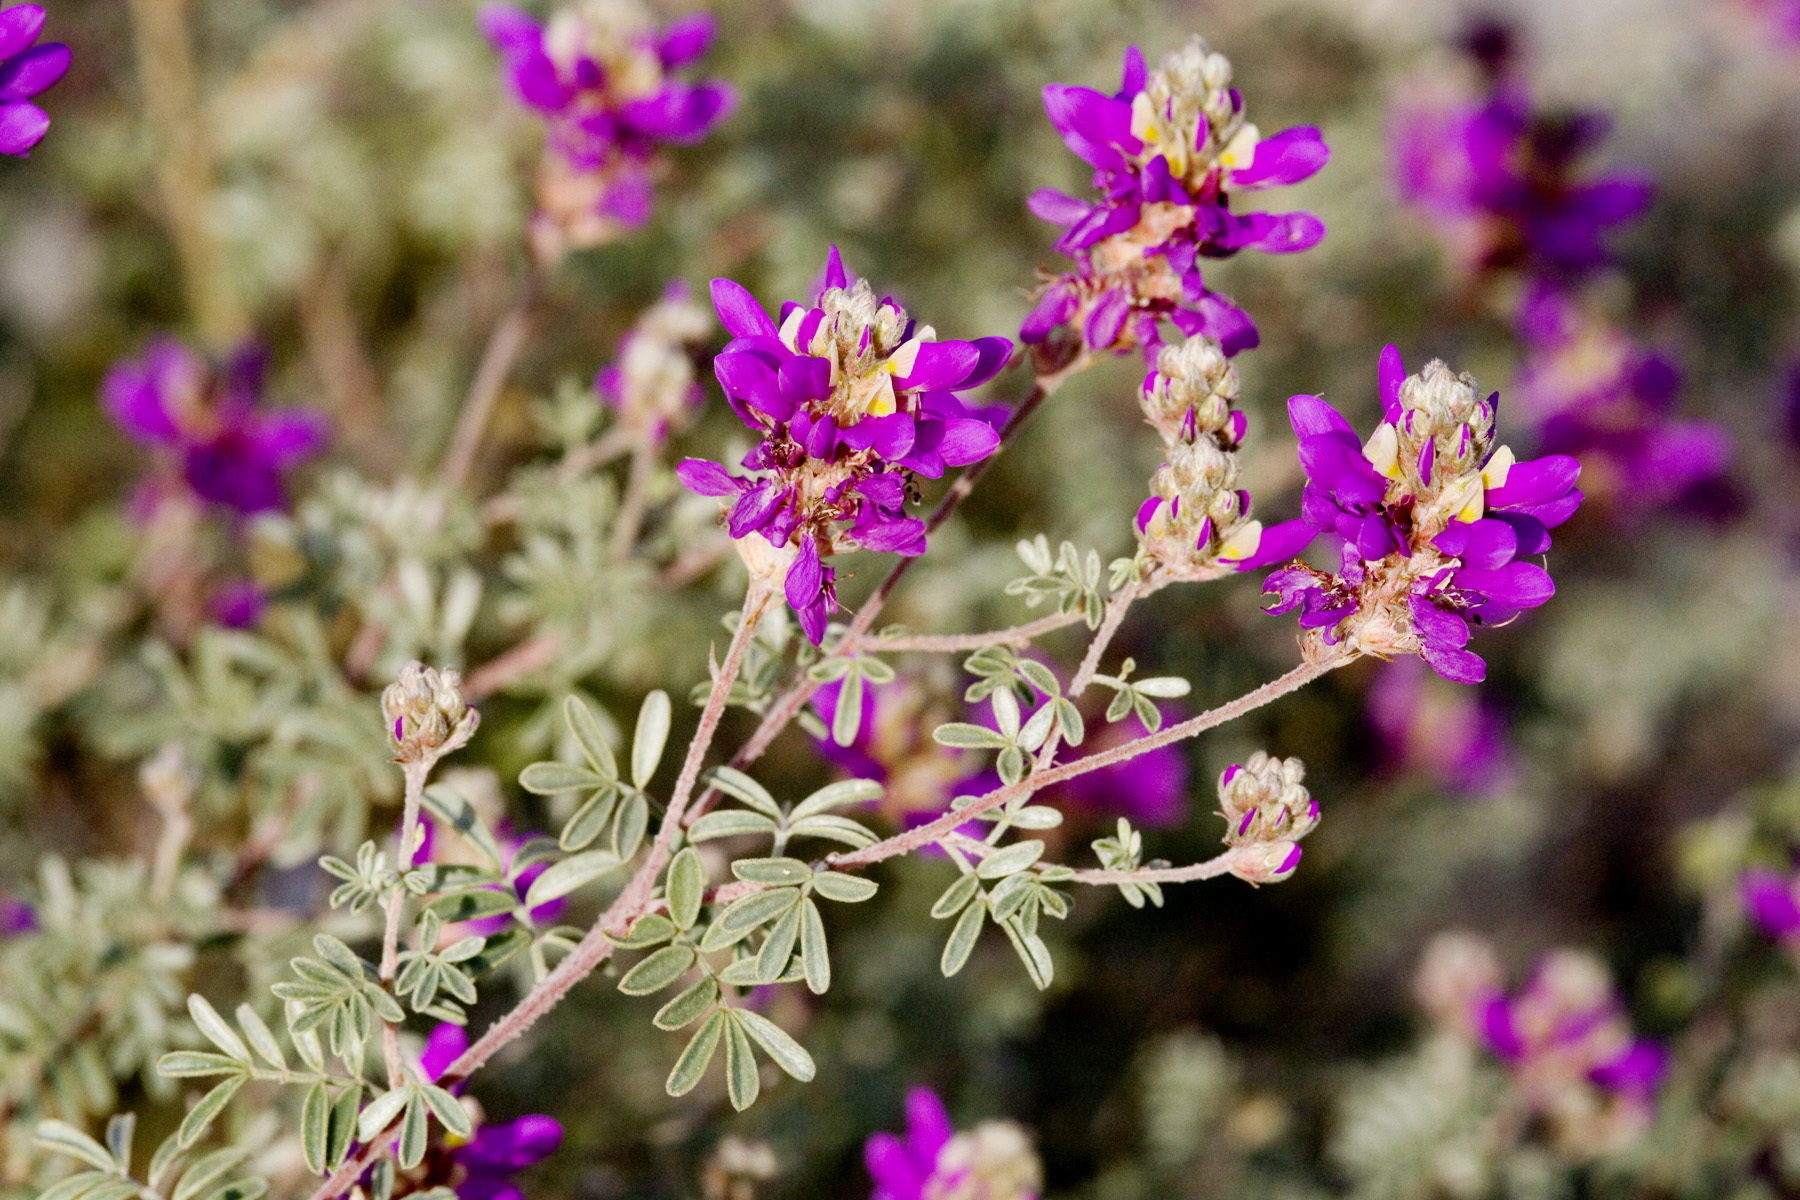 Daleas(Dalea species) - Several Species. Dalea bicolor pictured. Adult nectar plants. Larval food plants for Reakirt's Blue (Hemiargus isola), Southern Dogface (Zerene cesonia), and Gray Hairstreak (Strymon melinus).